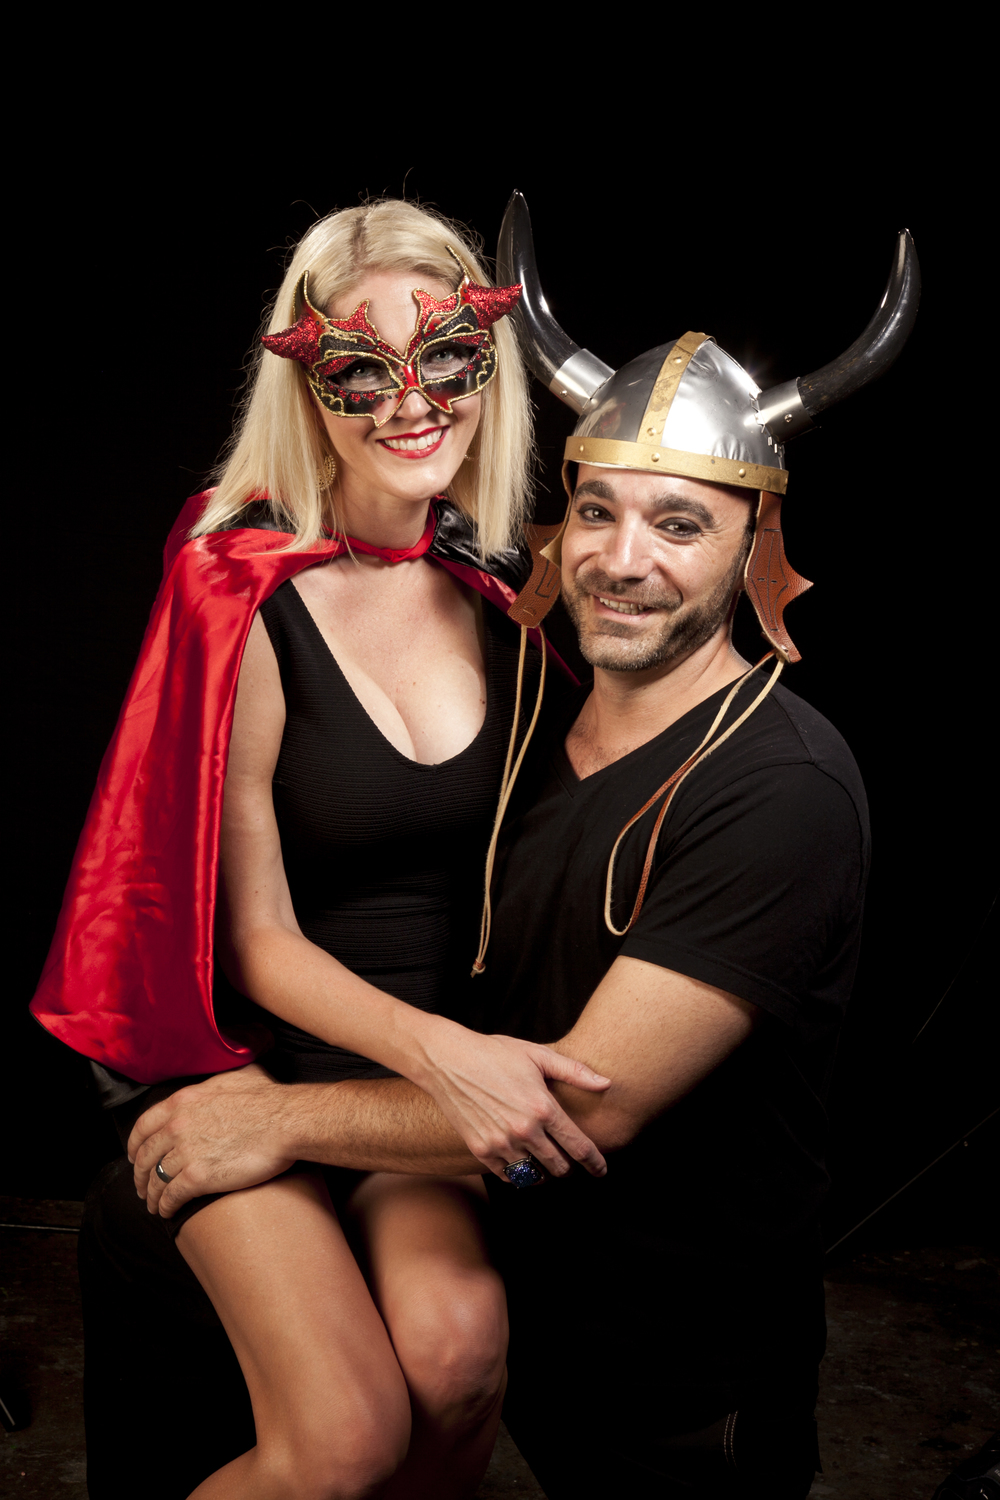 Mr and Mrs Horned hat IMG_4413.jpg